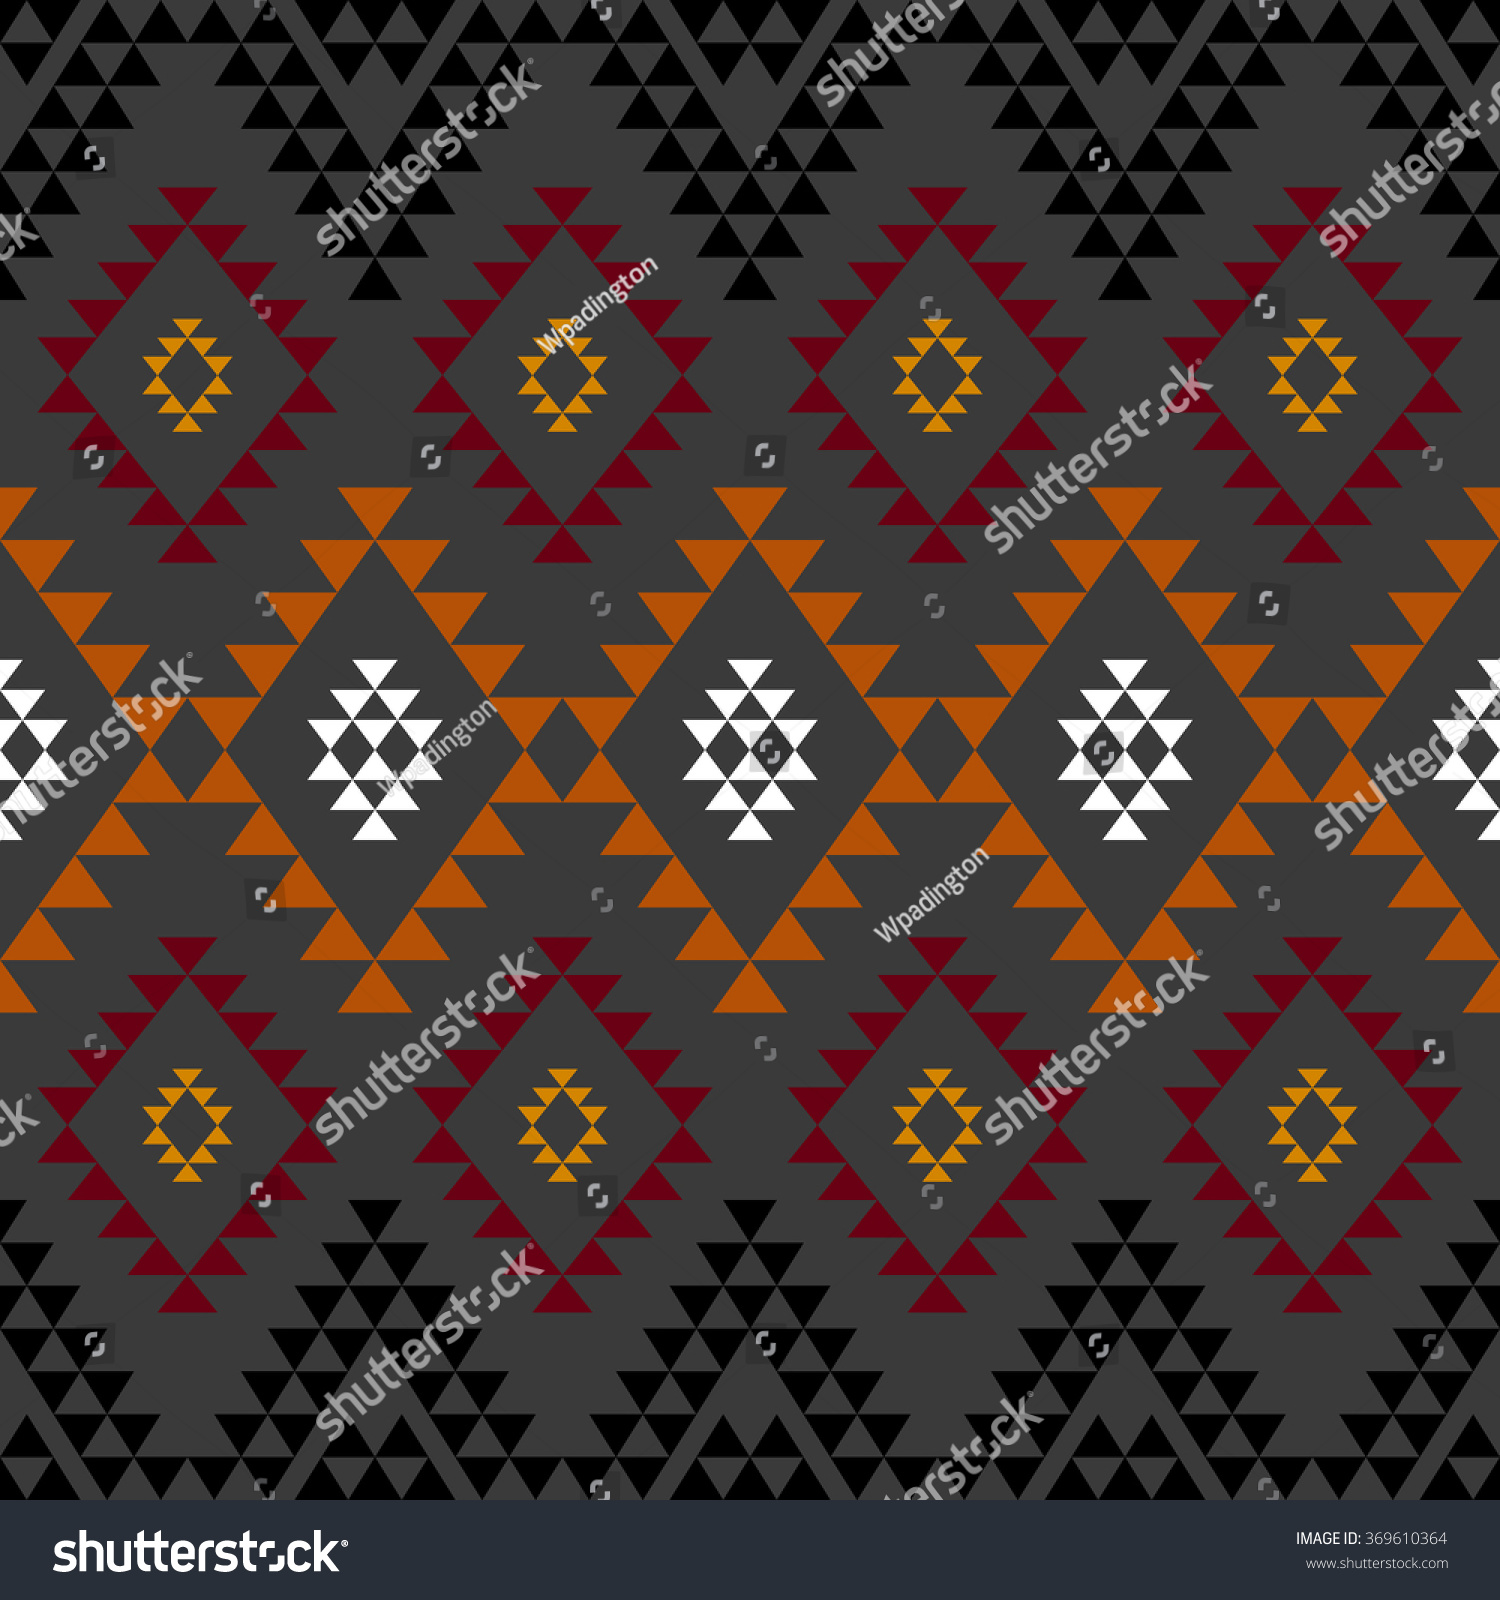 Background geometric mexican patterns seamless vector zigzag maya - Seamless Geometrical Ethnic Pattern Mexican Aztec Motives Grey Background